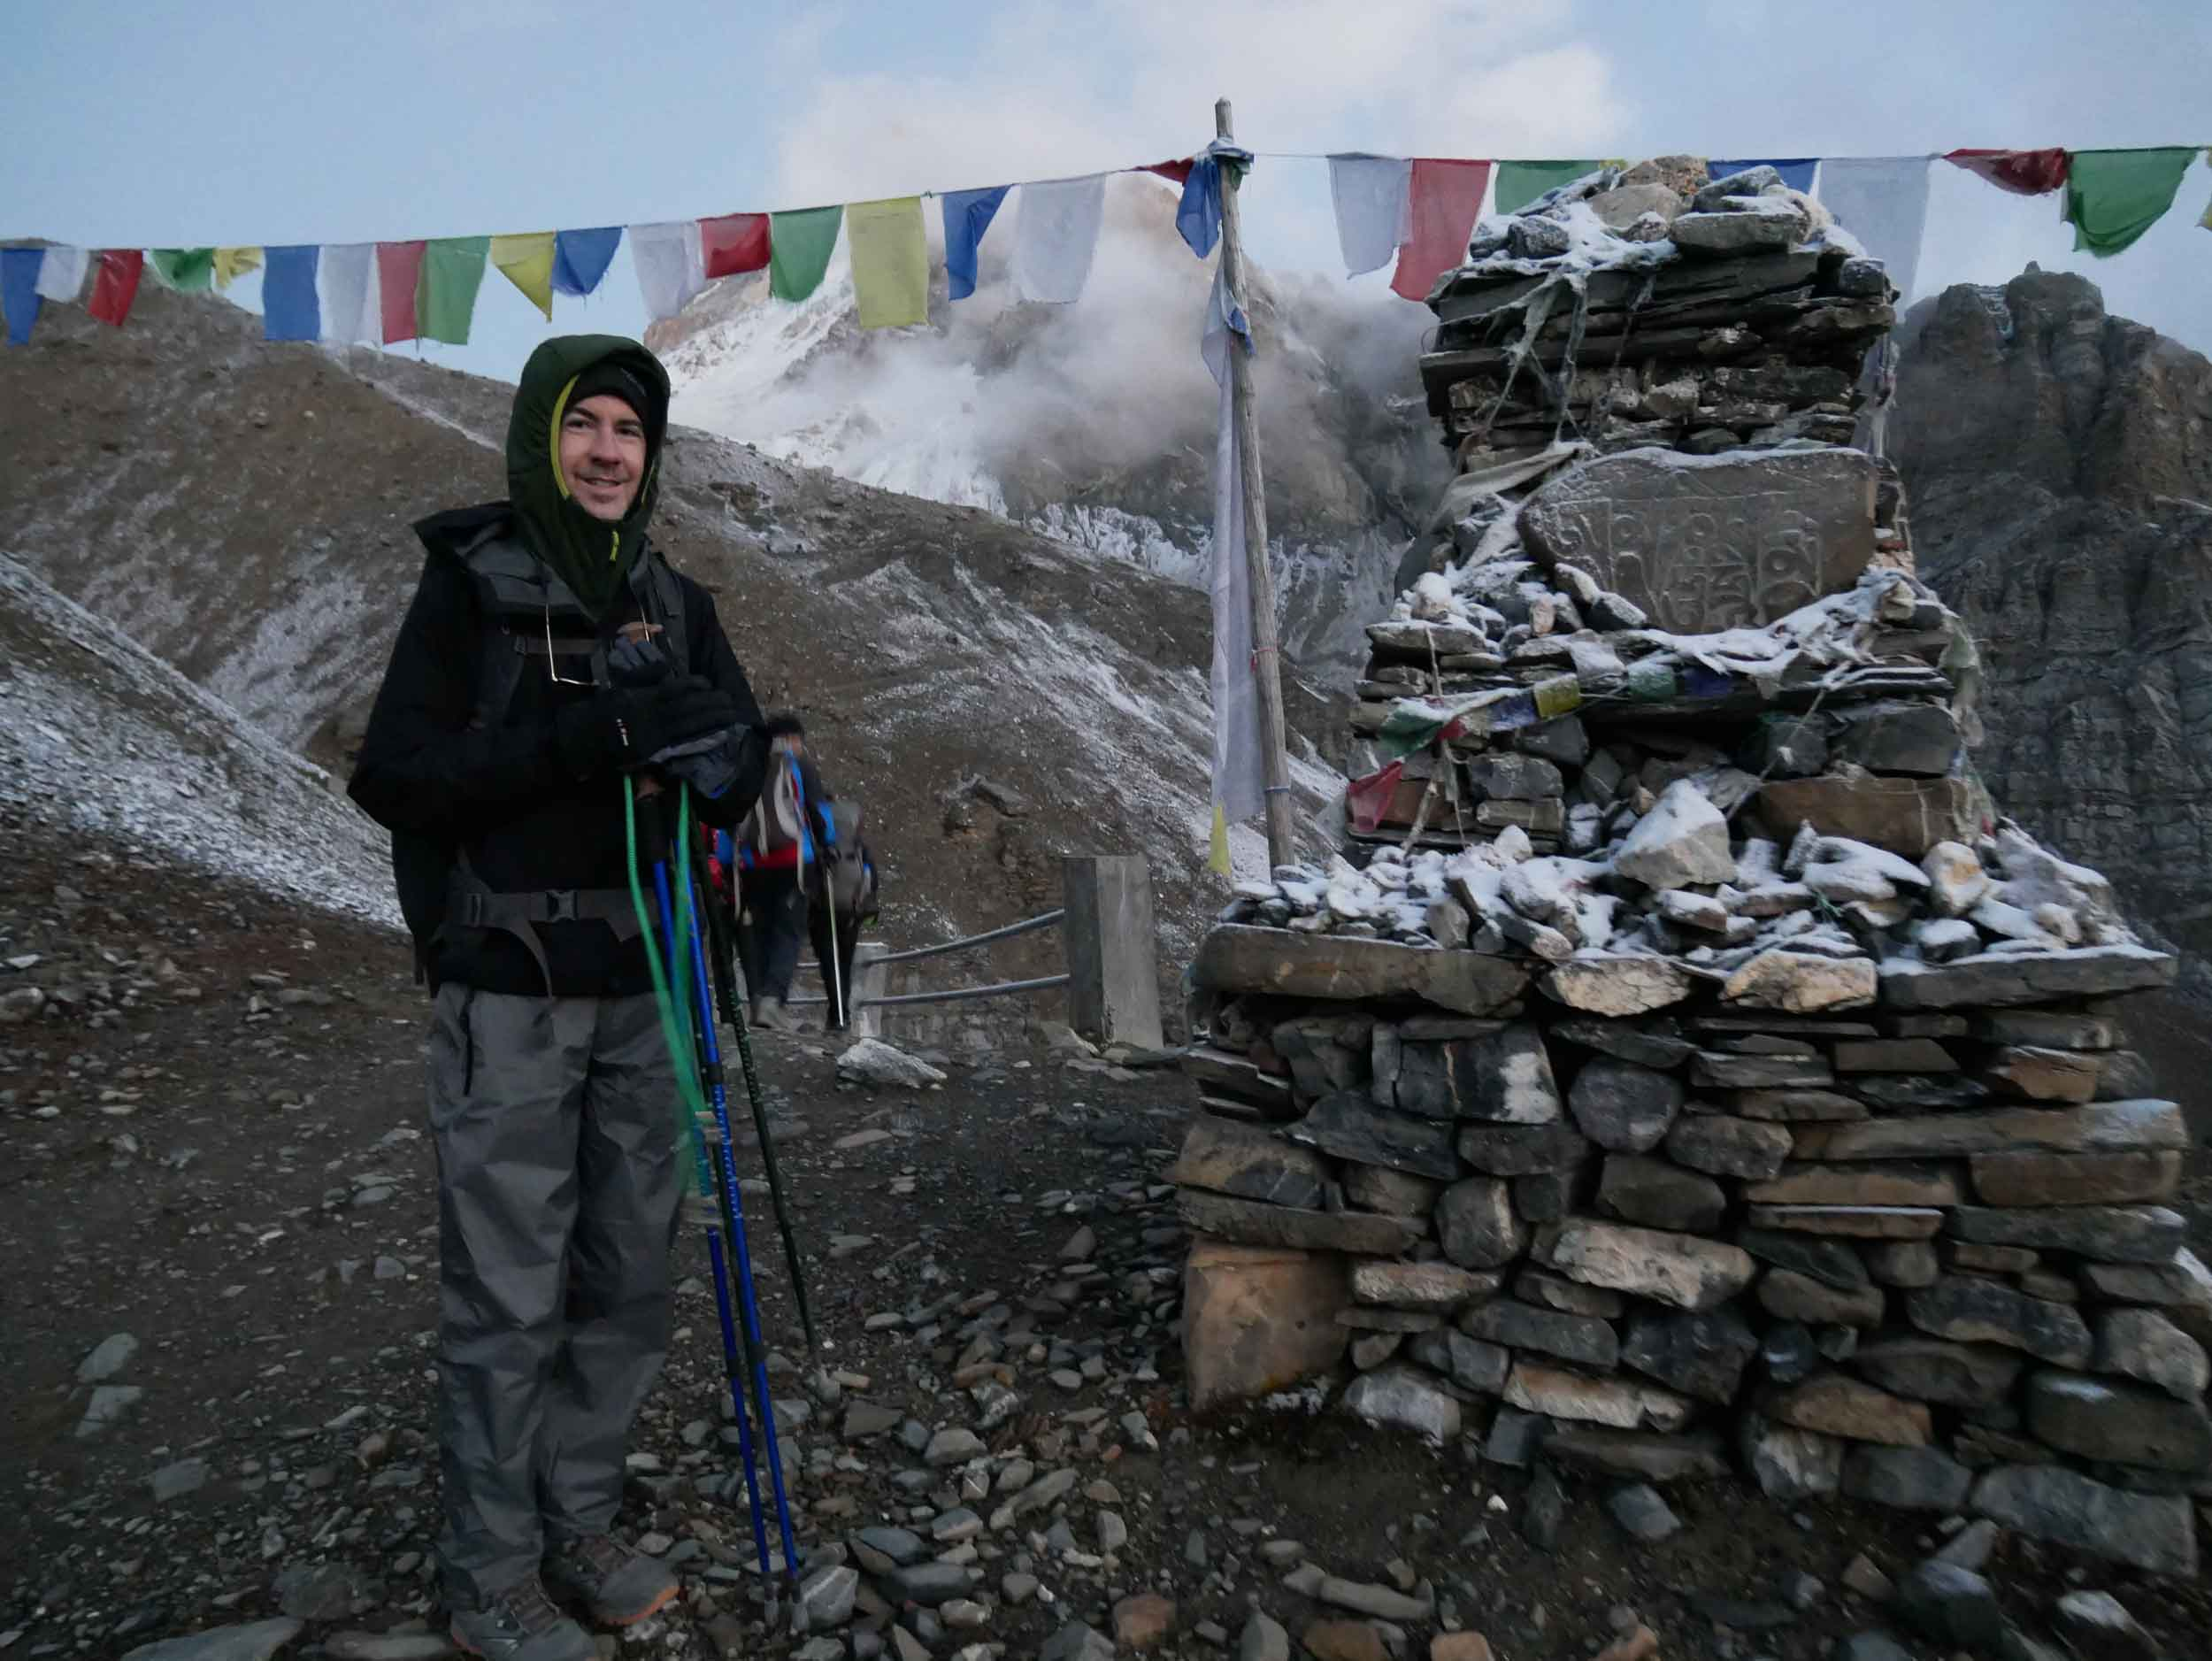 Bundled up for our pre-dawn ascent, we got one last offering of prayers at a  gompa  just above High Camp before crossing the Pass (Oct 9).